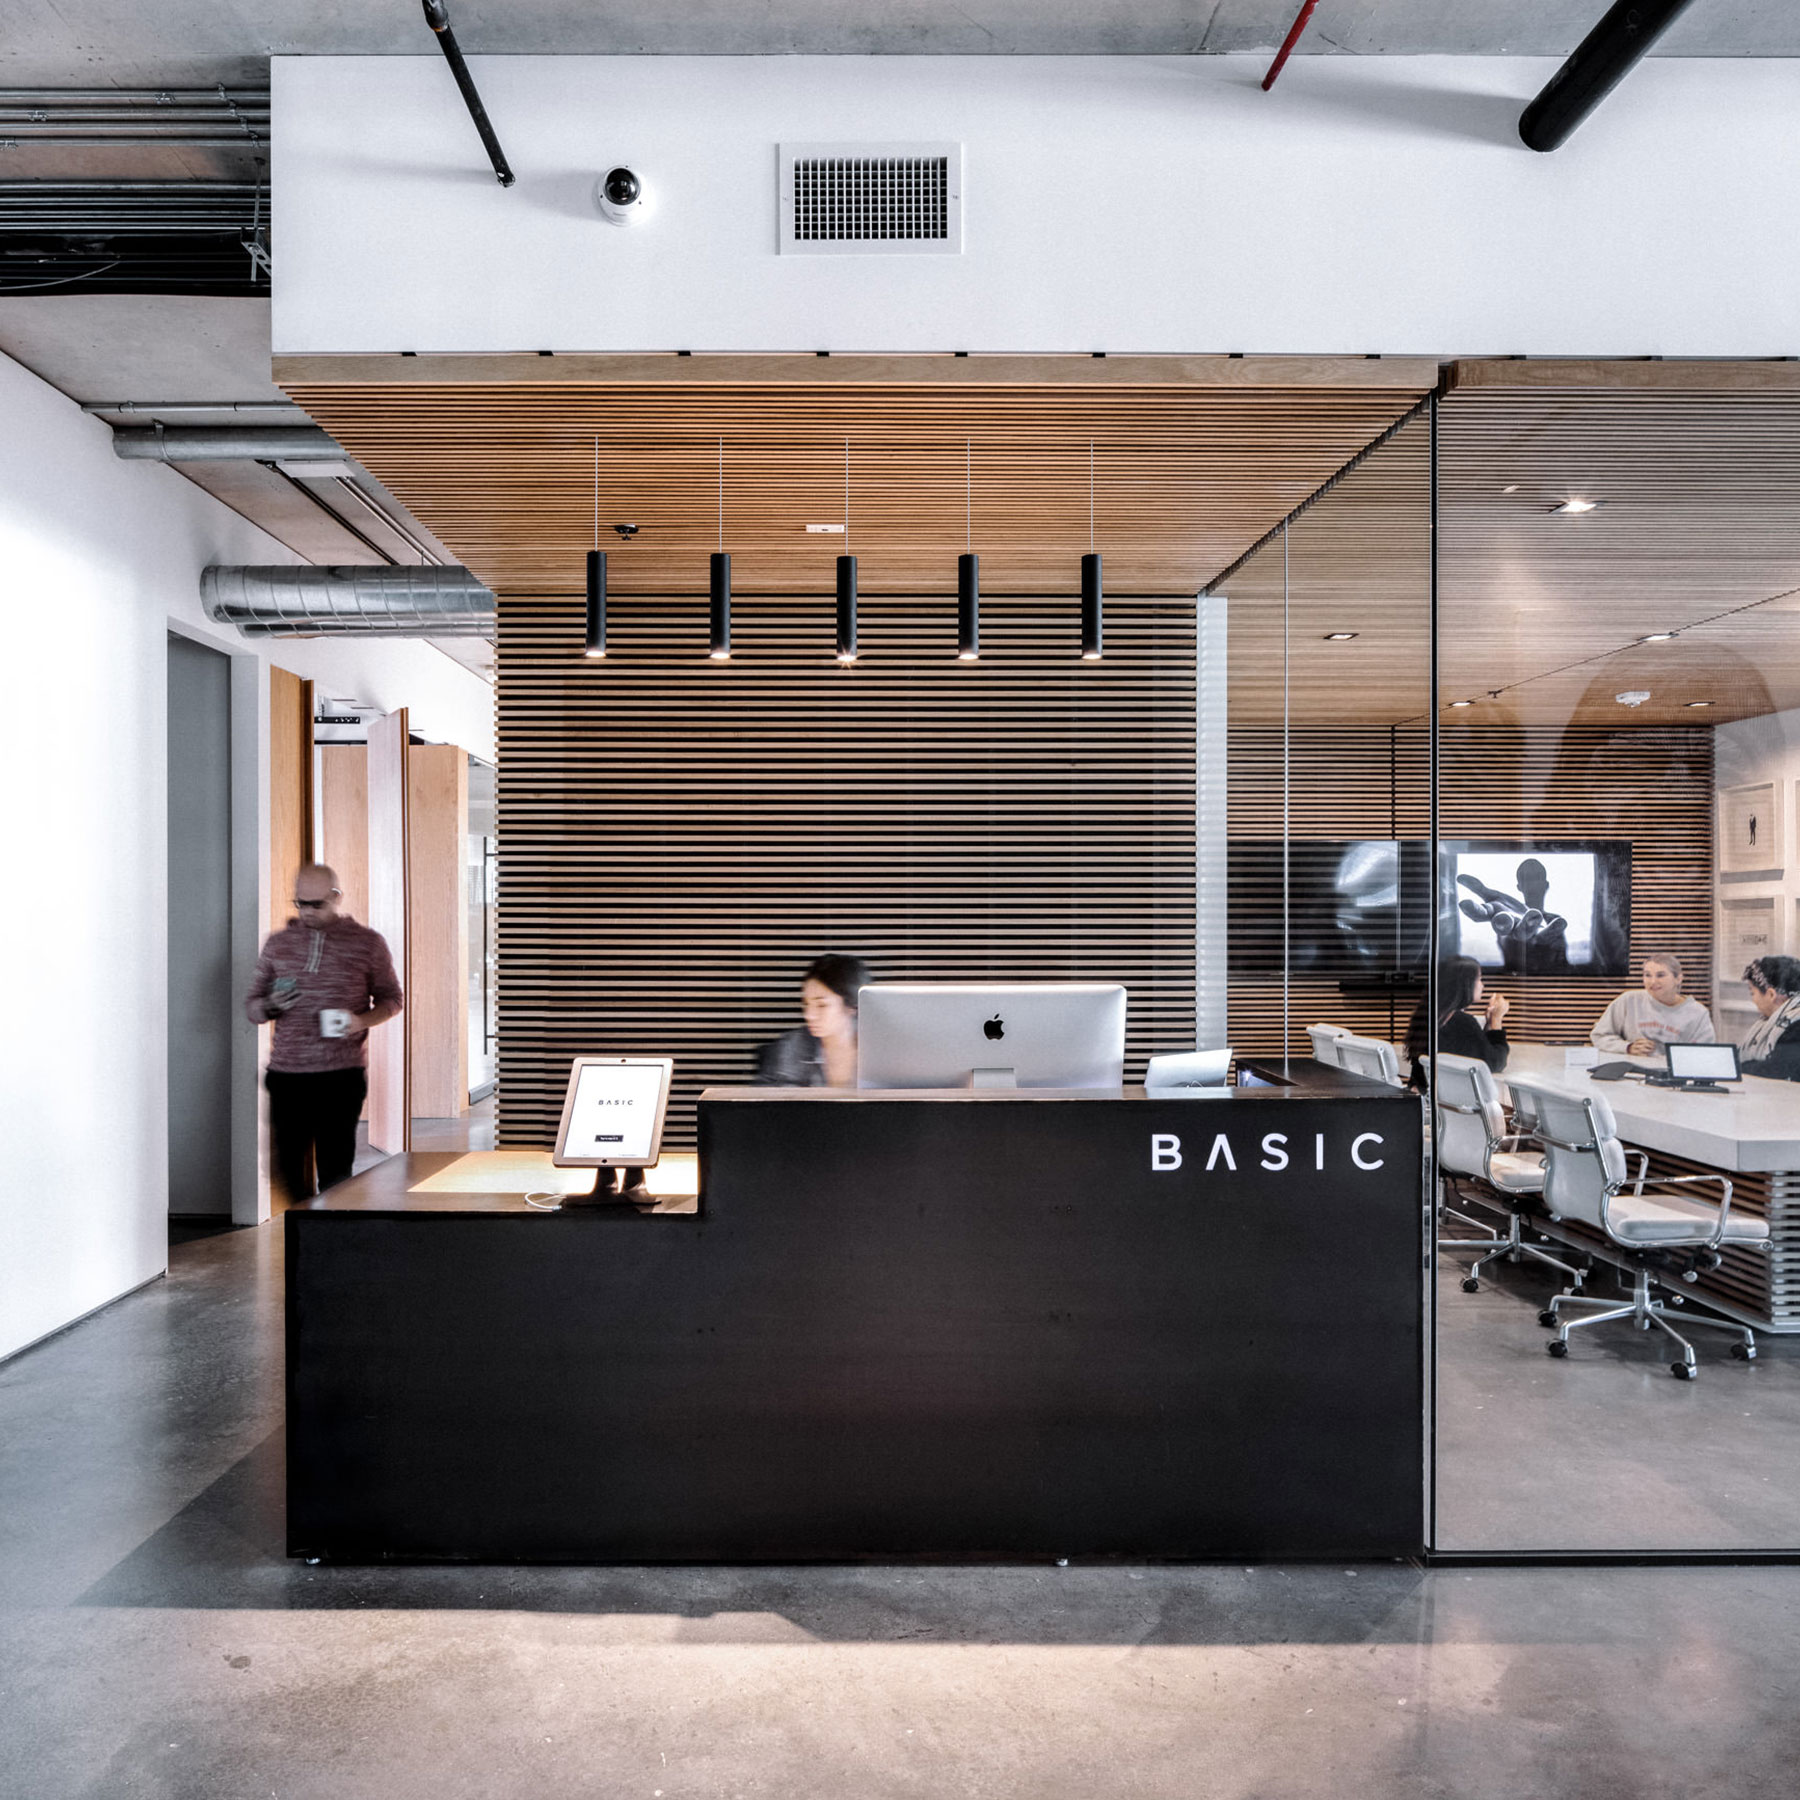 ENTRY - Upon entry, large blackened steel reception featuring integrated BASIC branding is flanked by two large conference rooms with custom slat trim.